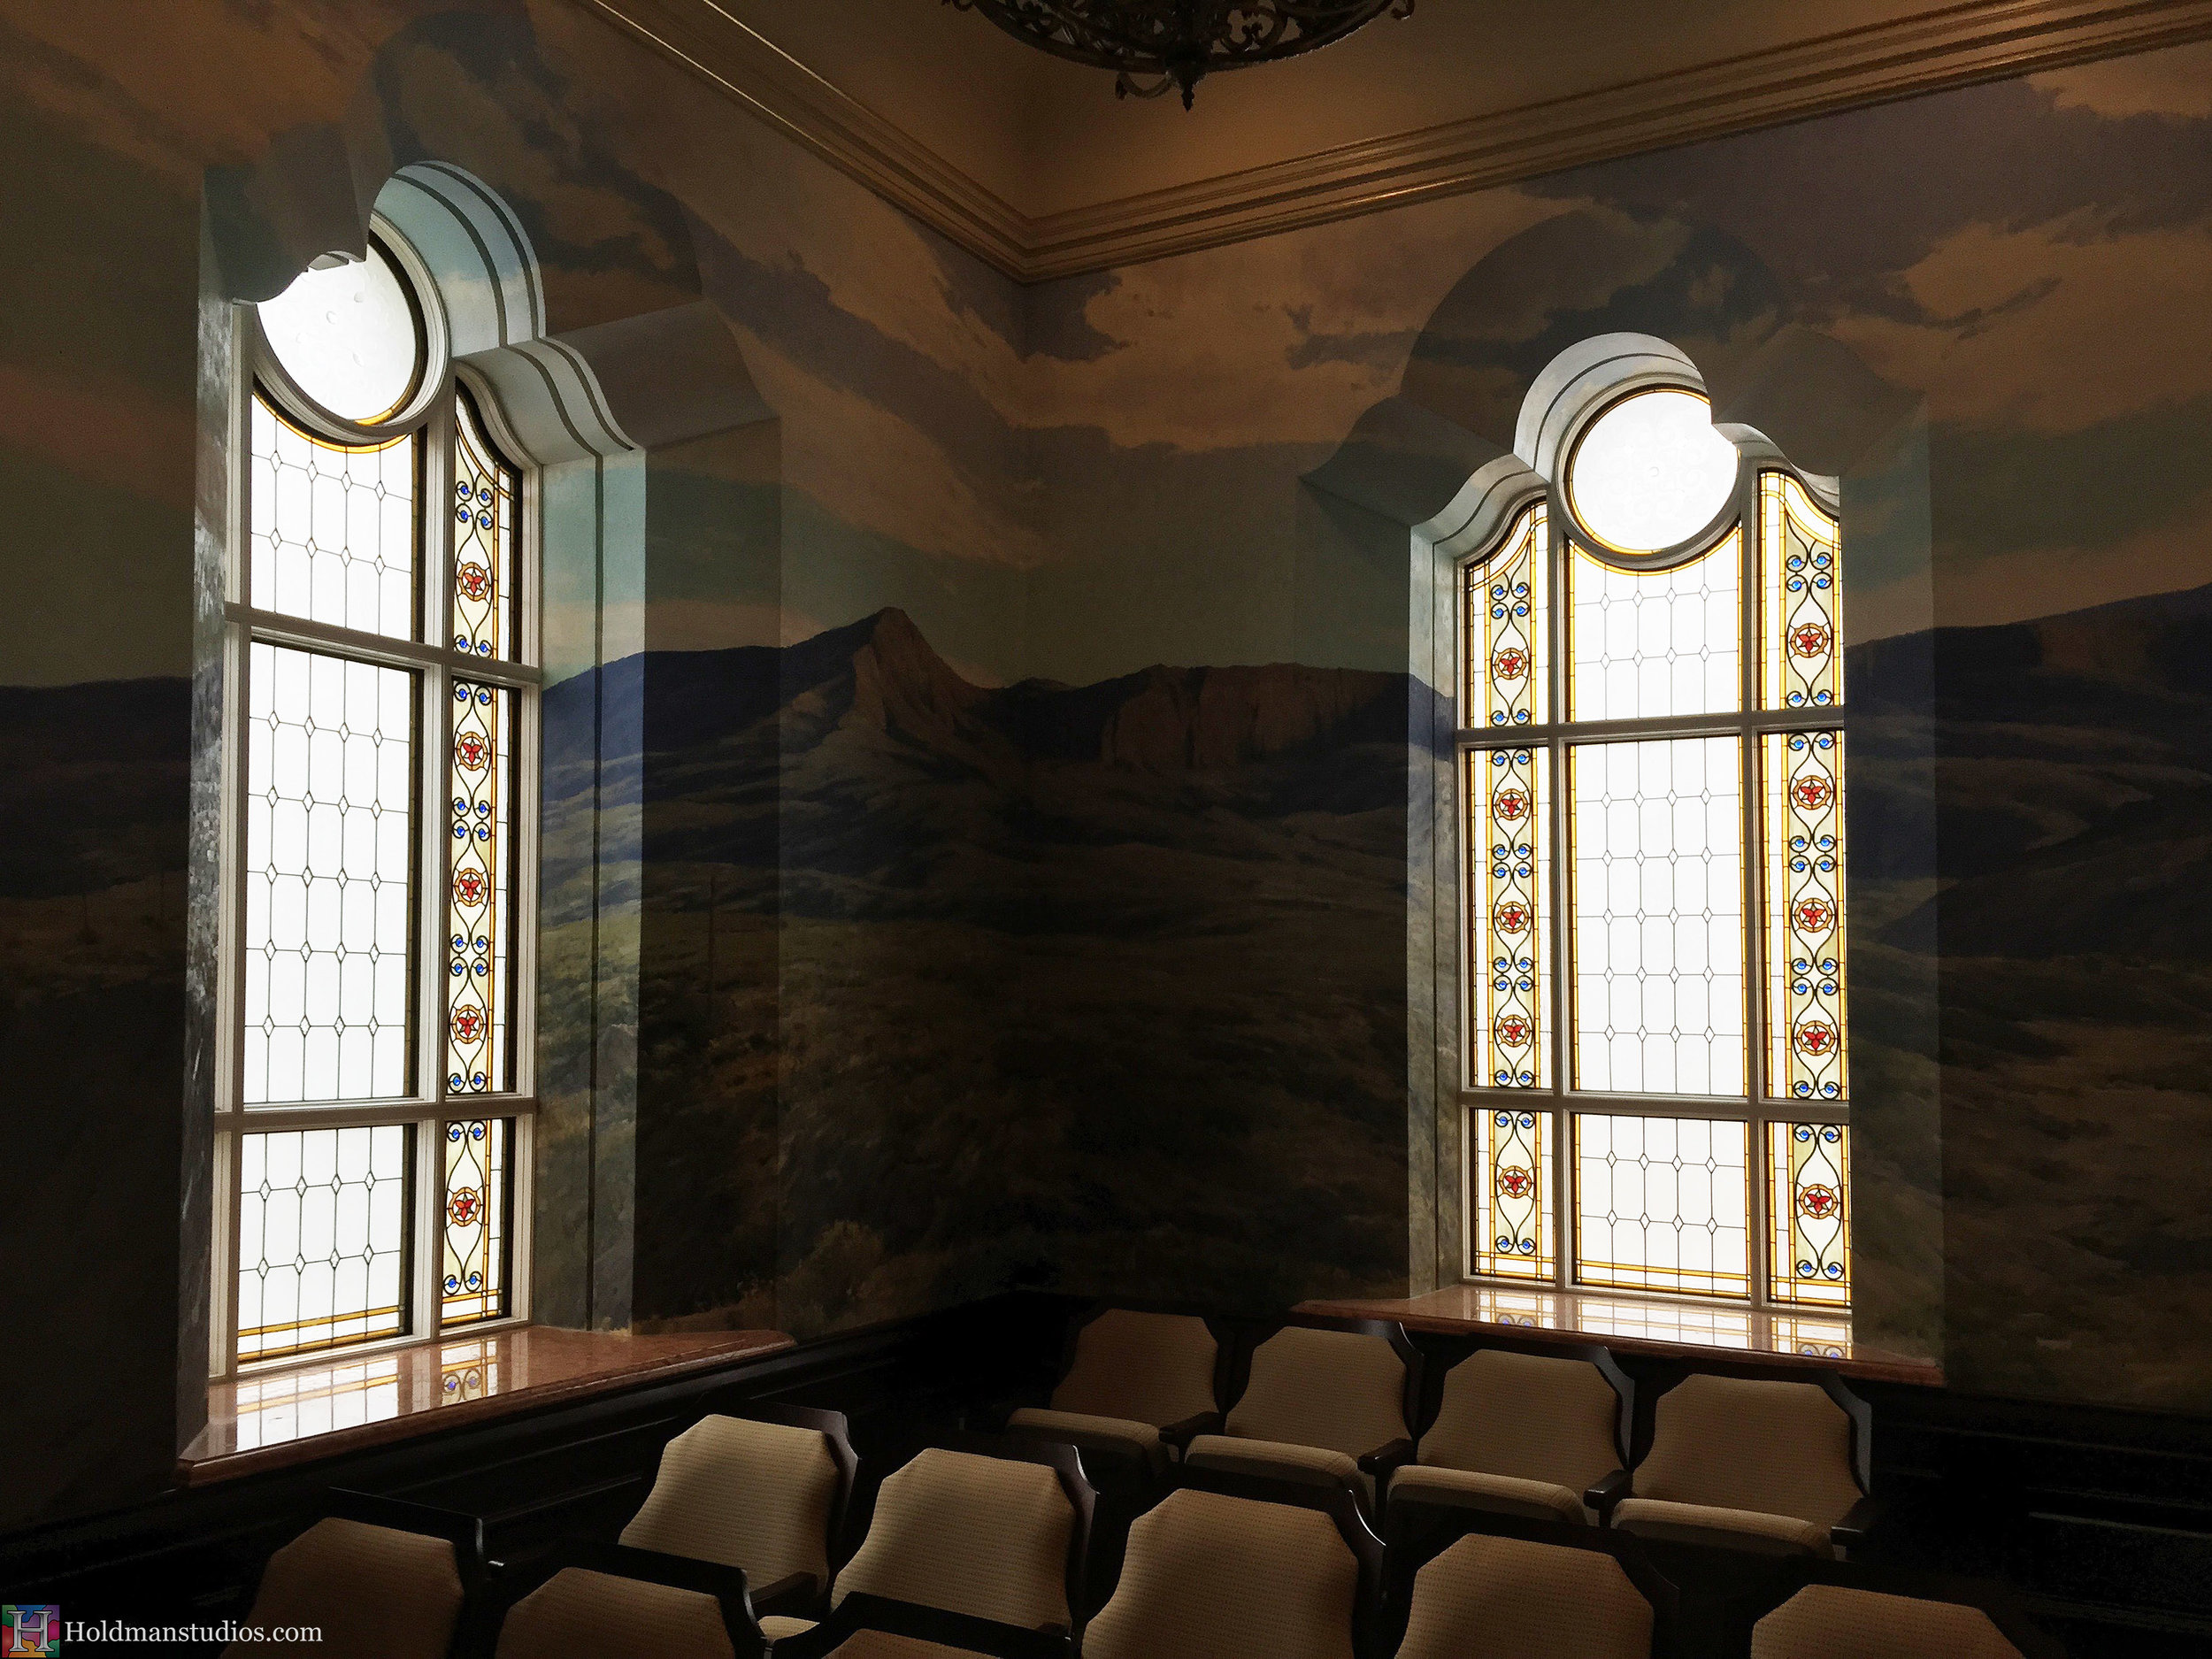 Holdman-Studios-Stained-Etched-Art-Glass-LDS-Mormon-Temple-Tijuana-Mexico-Bougainvillea-Bugambilia-Flower-Instruction-Room-Windows.jpg